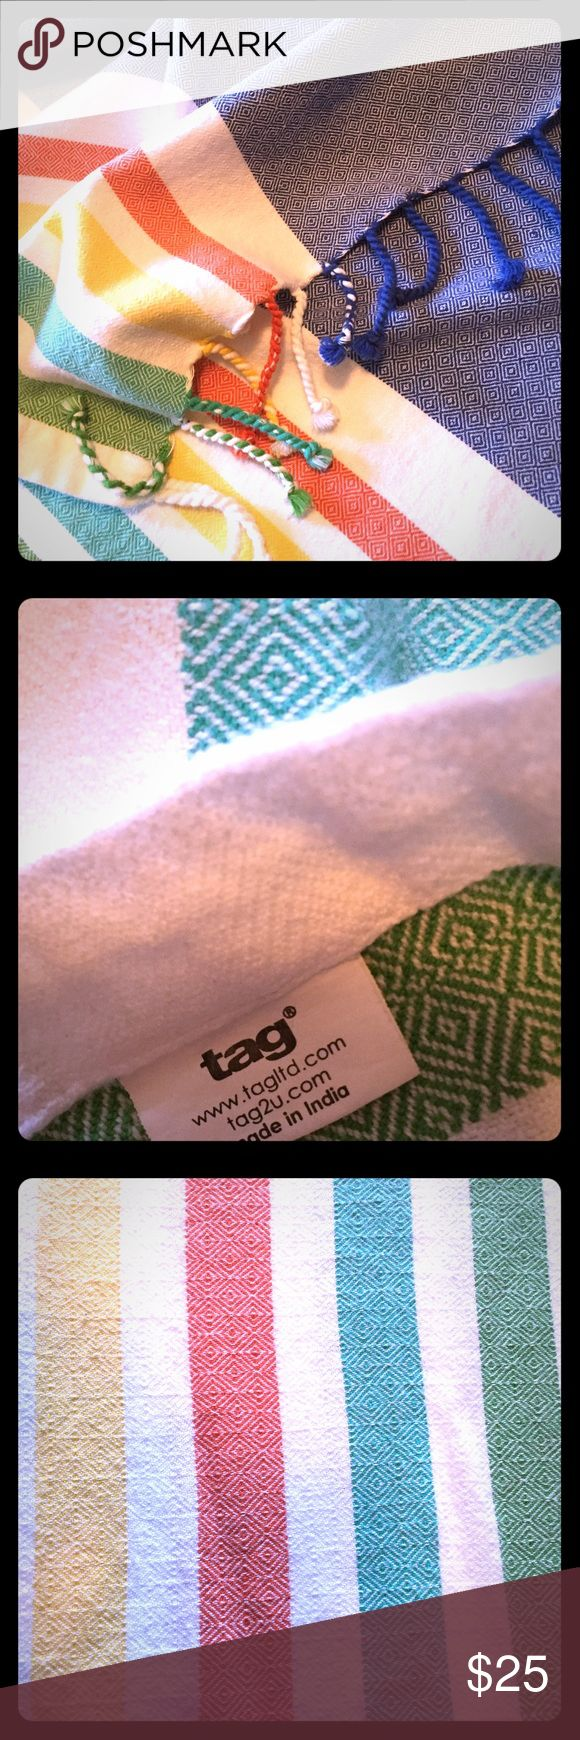 Tag Multi-Color Tablecloth Beach styling, bright, soft, fun! This Tag tablecloth is rectangular and fits tables seating 6-8. Barely used, bright whites and colors! Perfect summer tablecloth - goes well with beach-themed tablewear. Tag Other